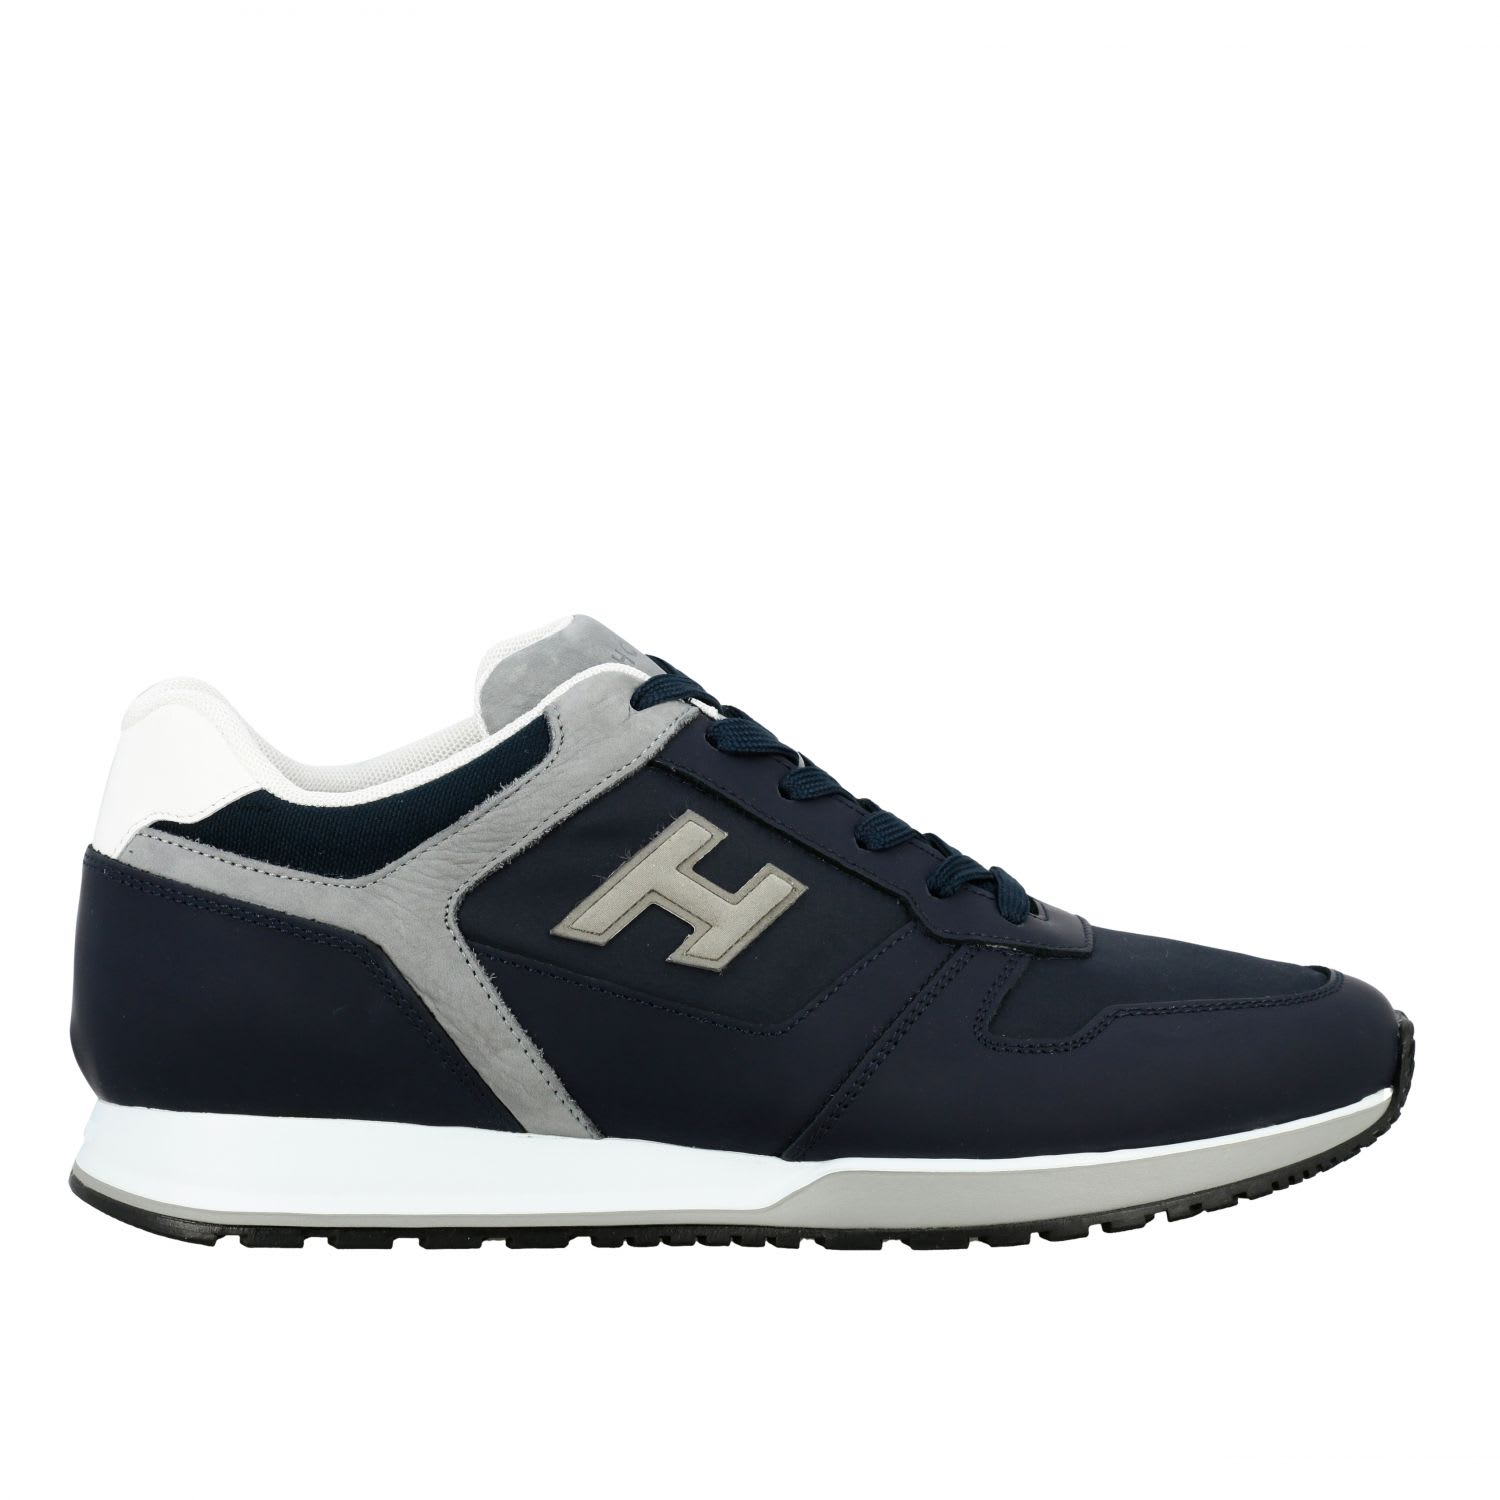 Hogan Sneakers Hogan 321 Running Sneakers In Nylon And Leather With Flock H